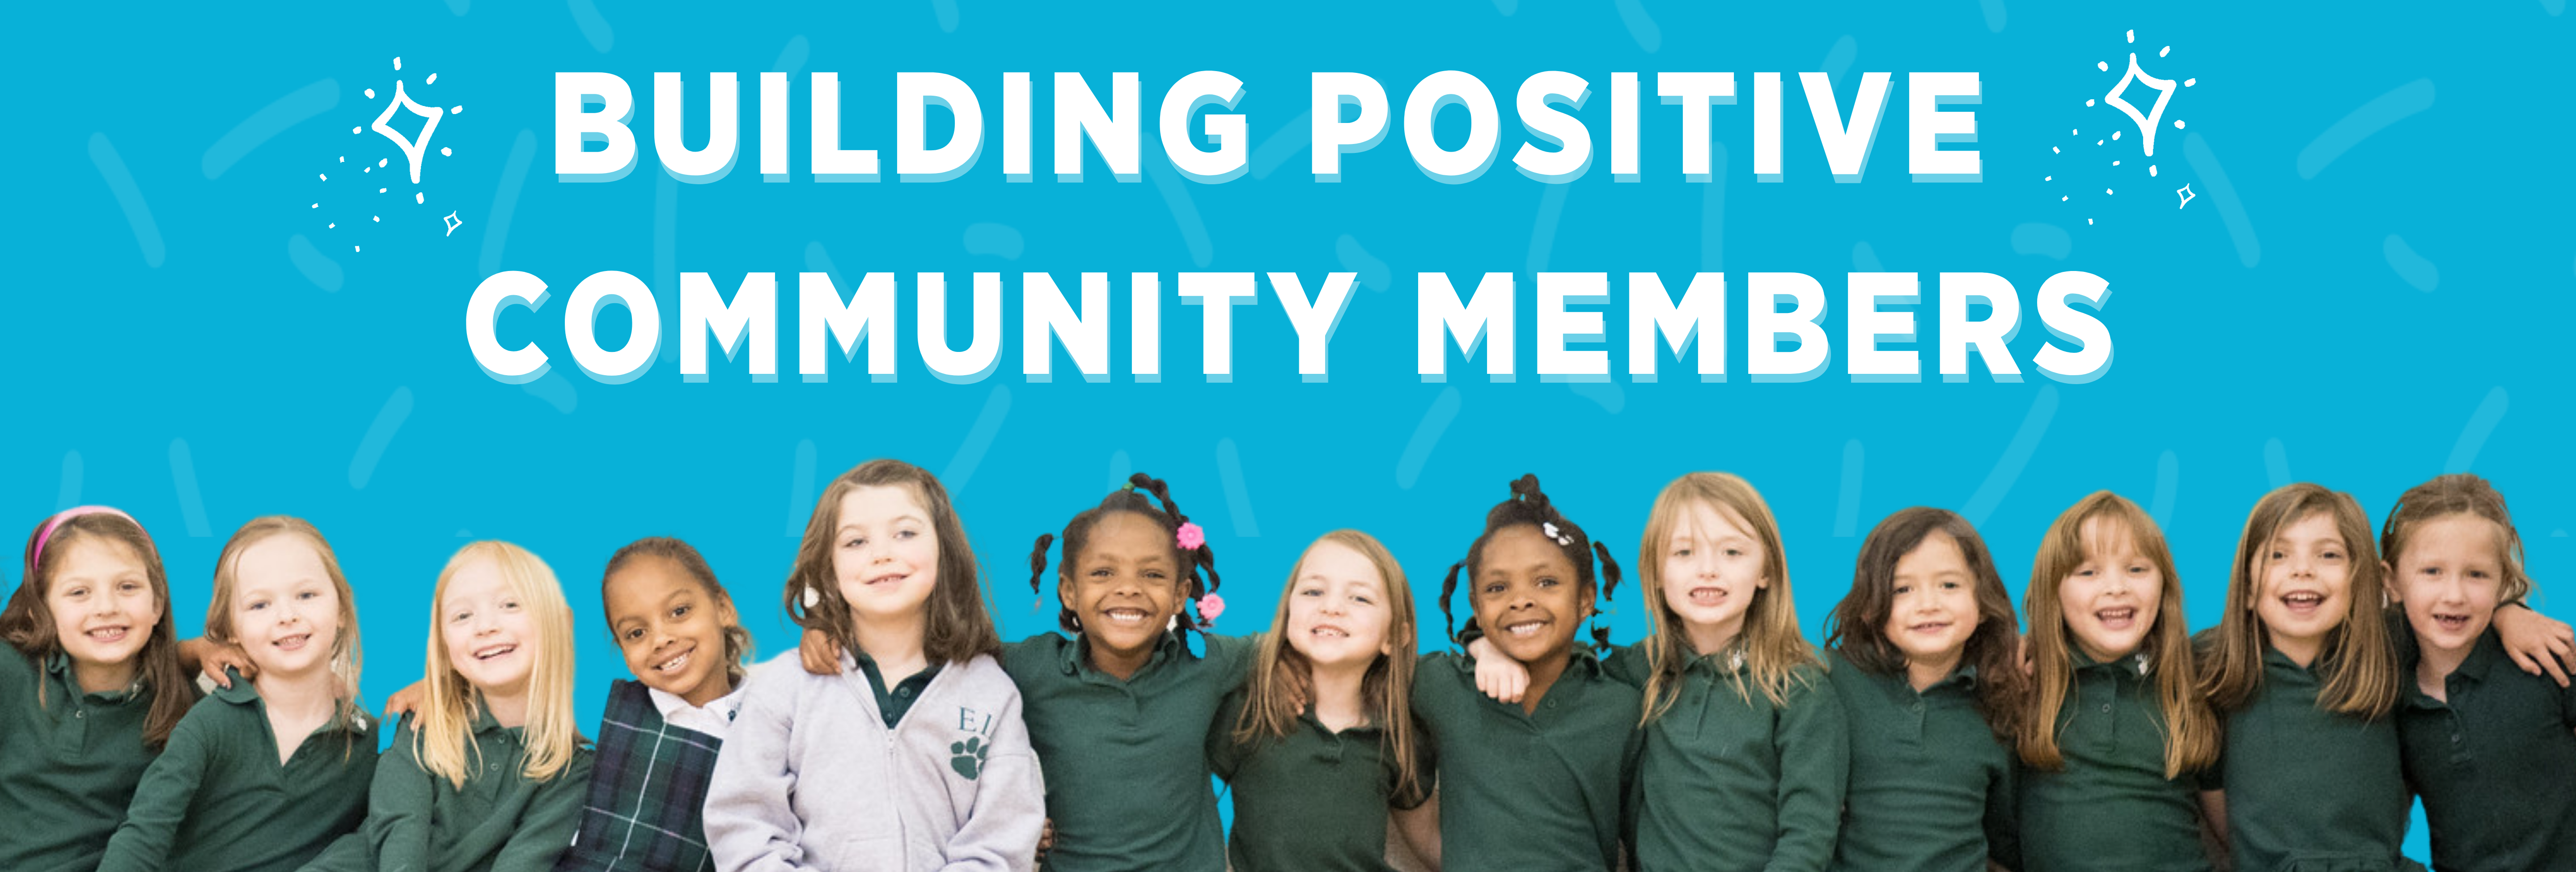 Building Positive Community Members